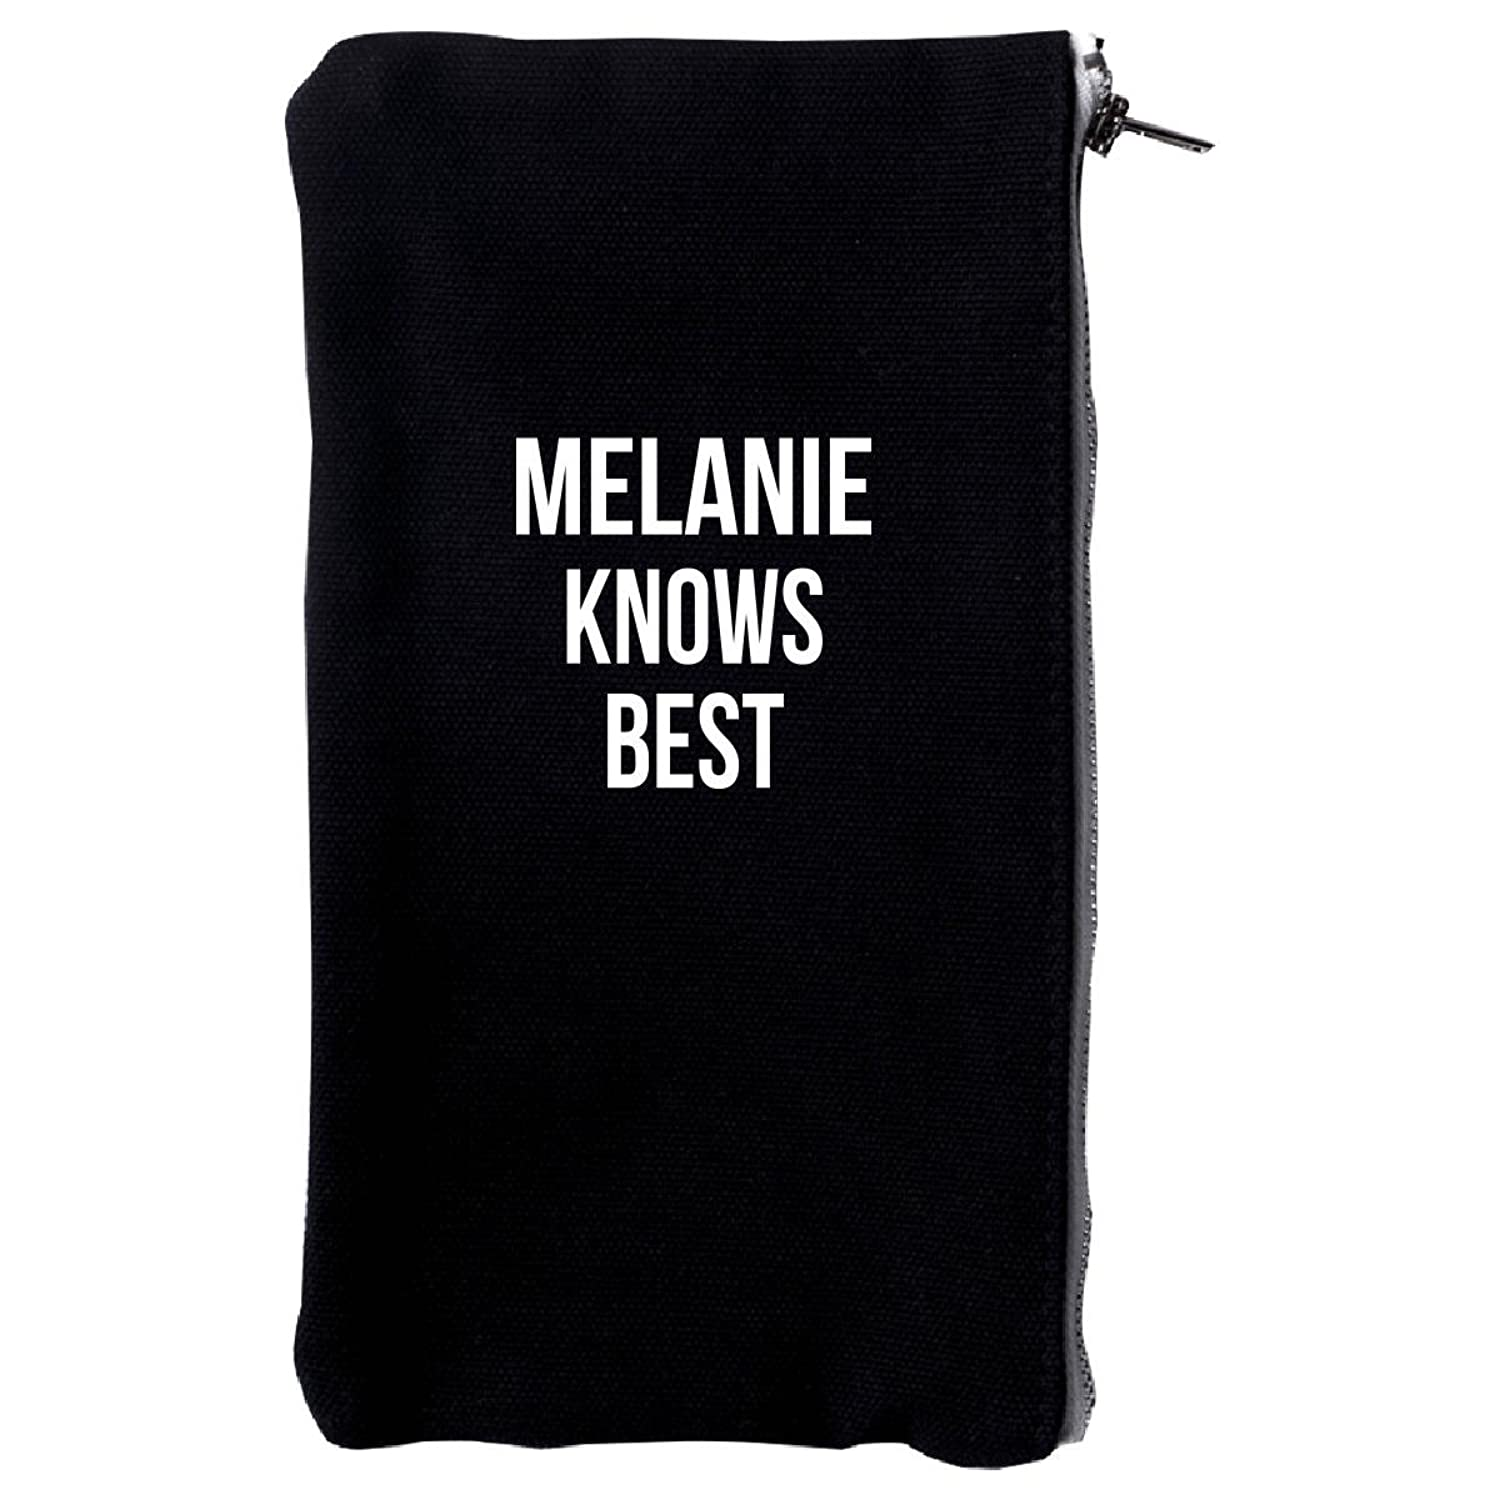 Melanie Knows Best First Name Gift - Make Up Case